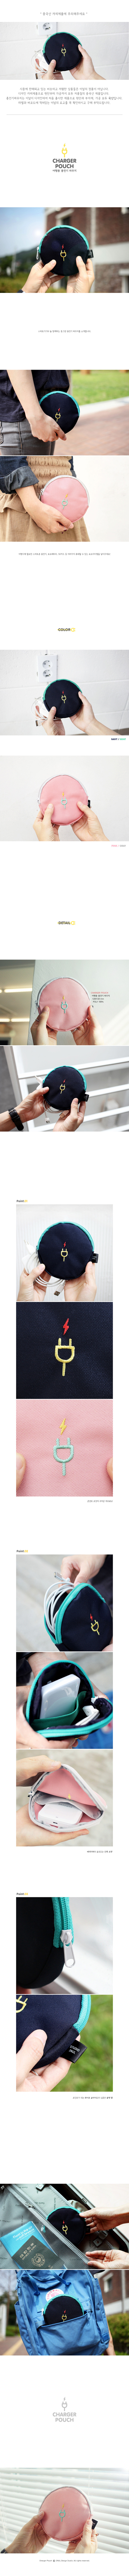 Charger Pouch - 여행용 충전기 파우치 5,500원 - 이널 여행/레포츠, 여행수납, 트래블팩단품, 멀티파우치 바보사랑 Charger Pouch - 여행용 충전기 파우치 5,500원 - 이널 여행/레포츠, 여행수납, 트래블팩단품, 멀티파우치 바보사랑